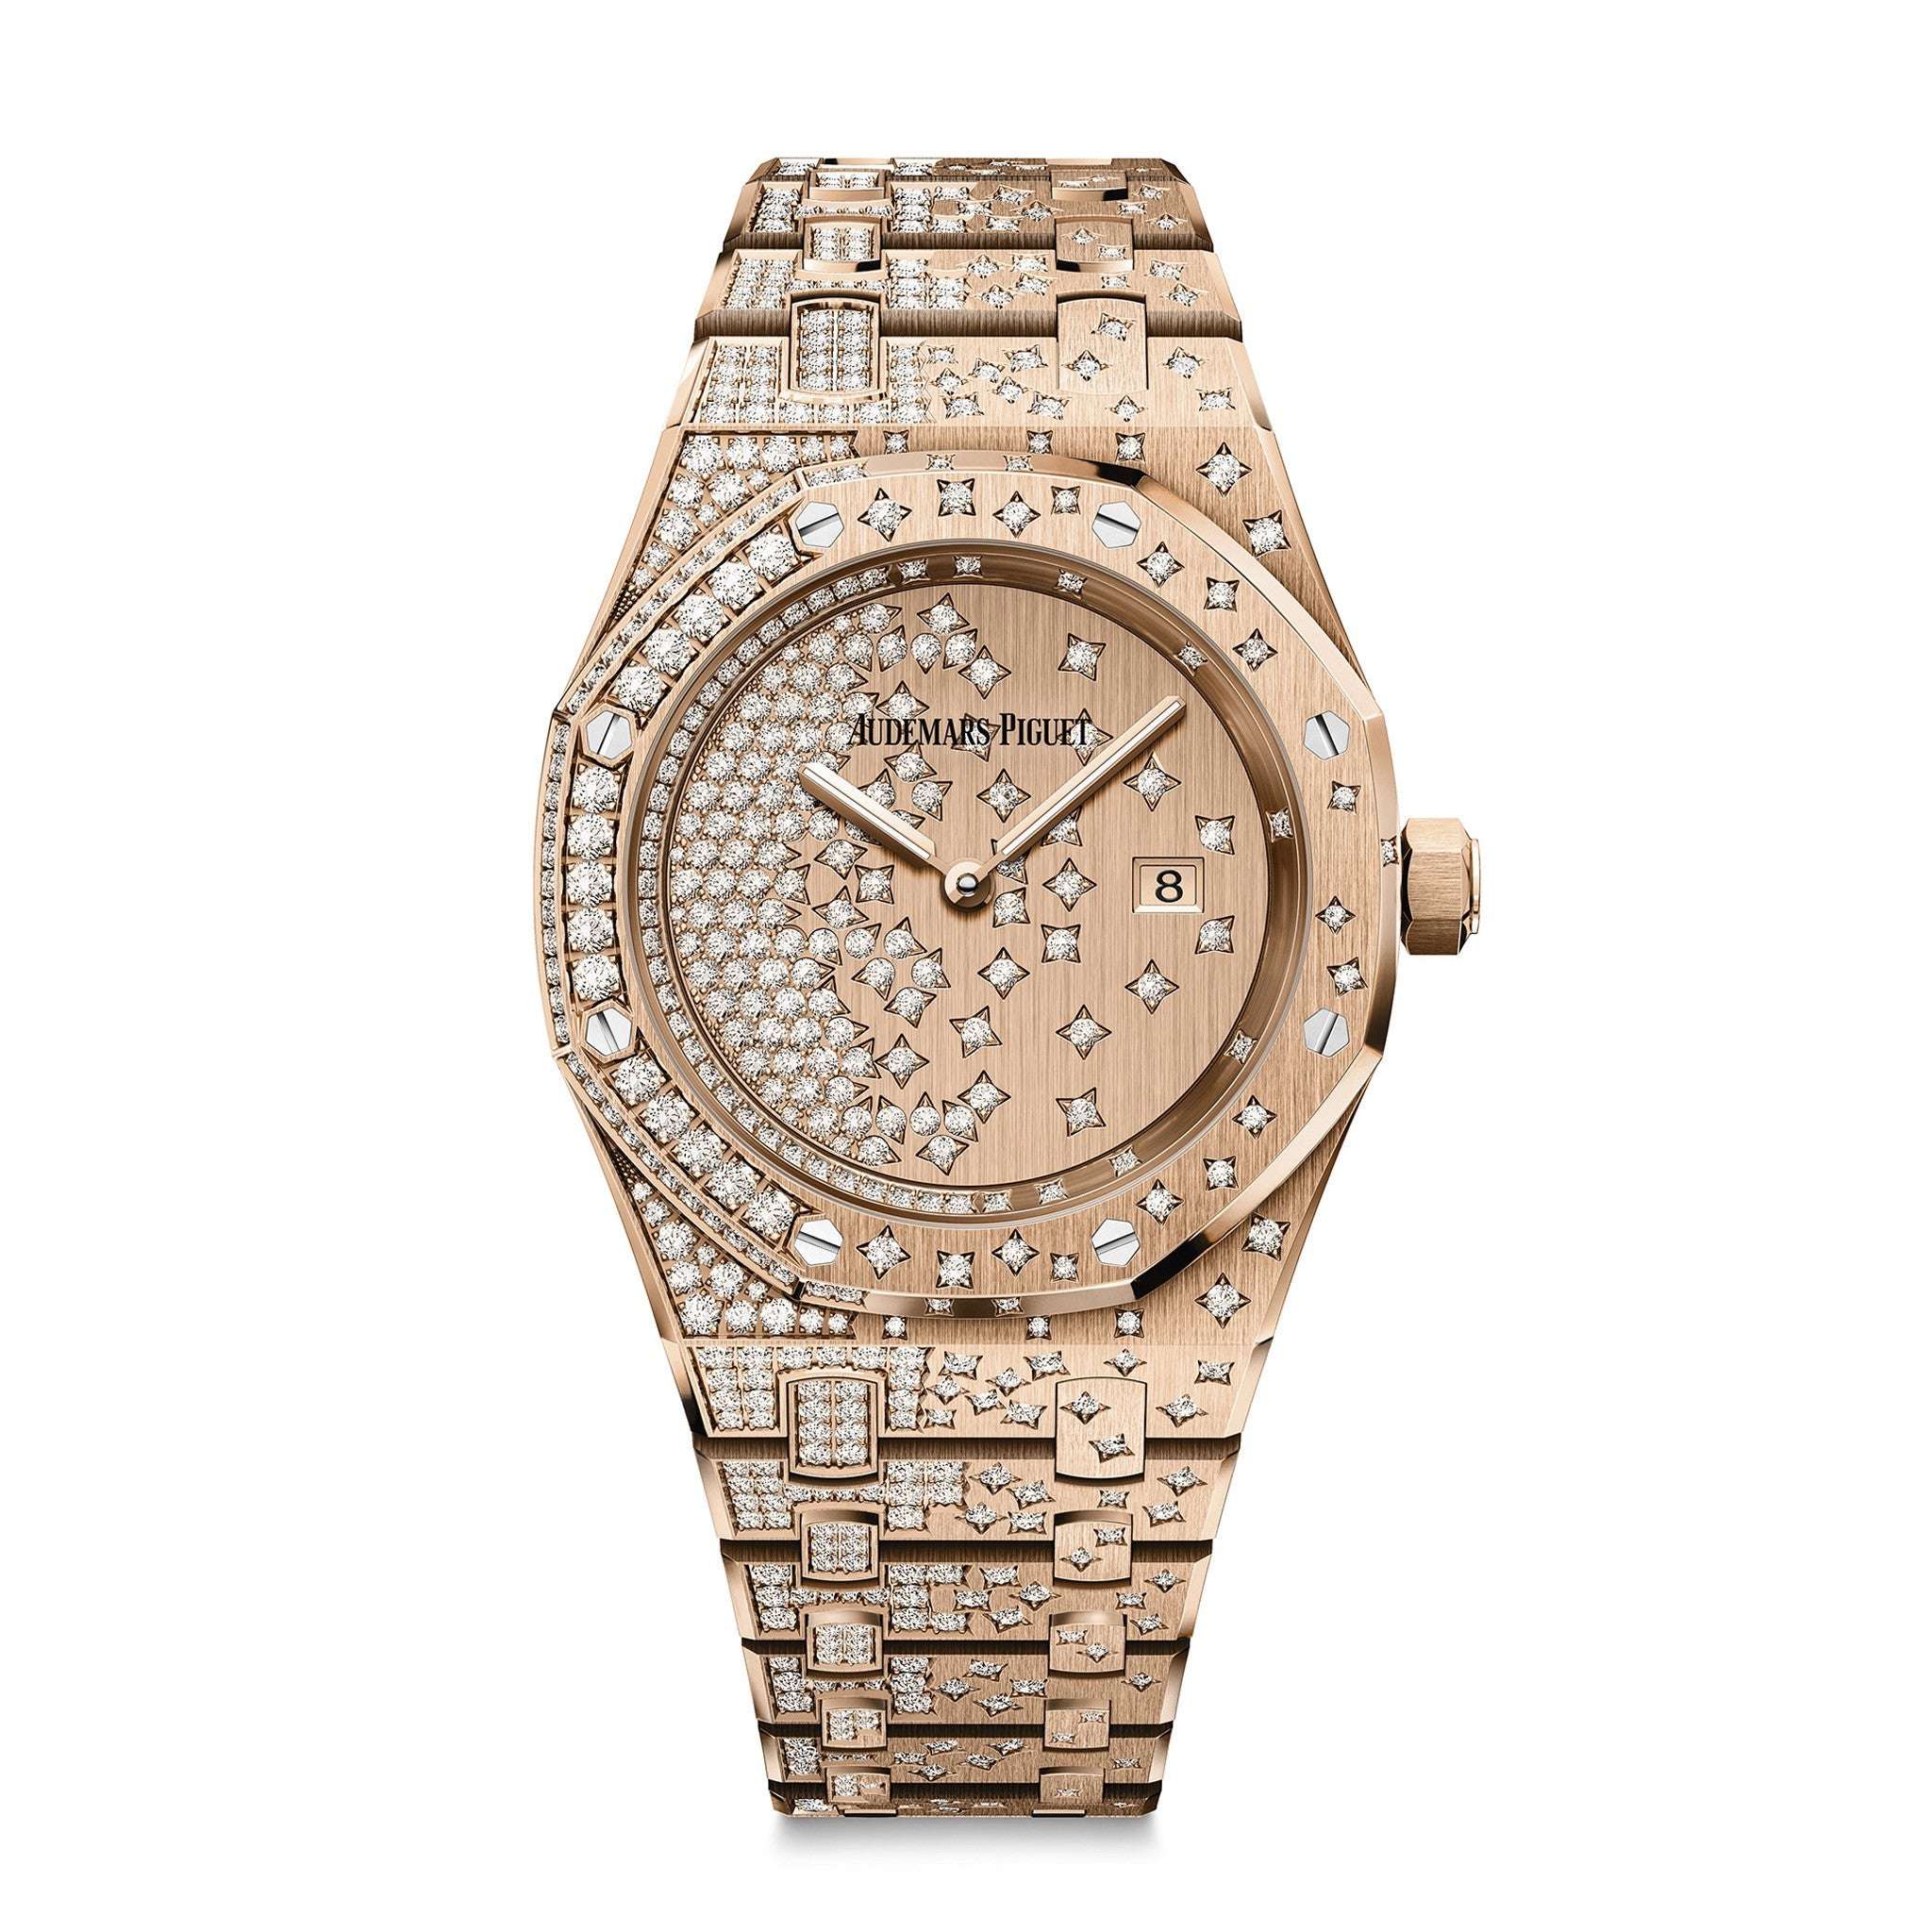 Royal Oak Ladies Quartz 67654OR.ZZ.1264OR.01 - Audemars Piguet